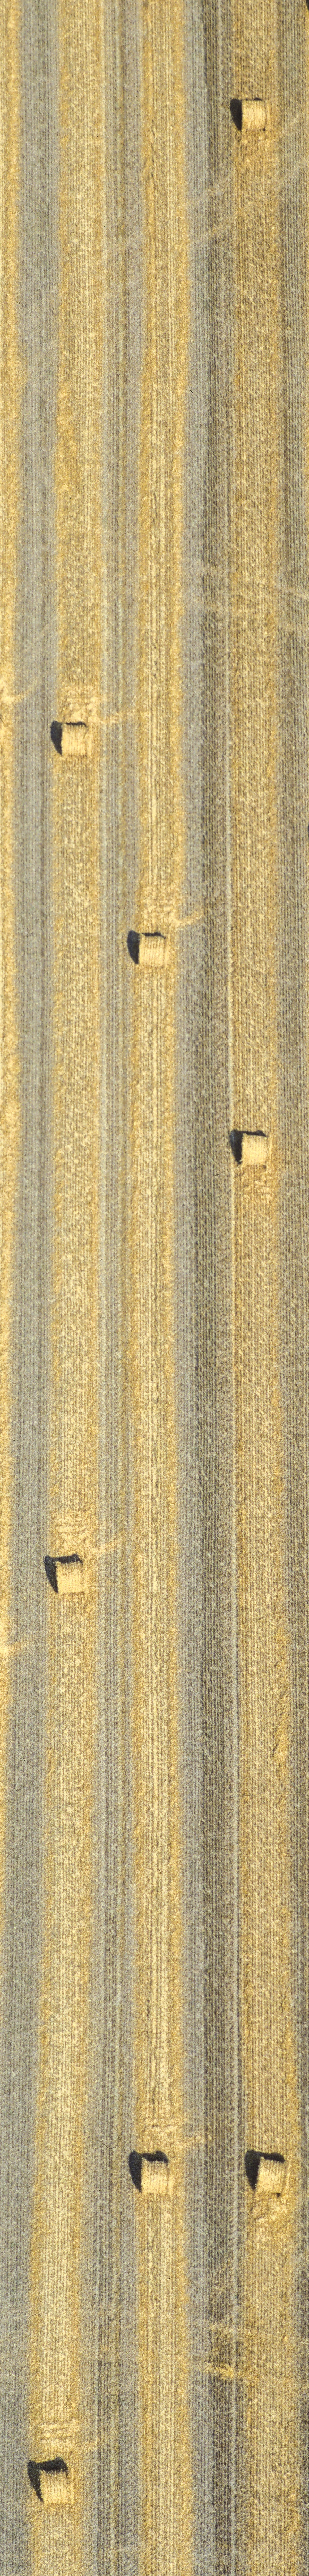 Aerial view of bales of straw on a harvested grain field - Klaus Leidorf Aerial Photography